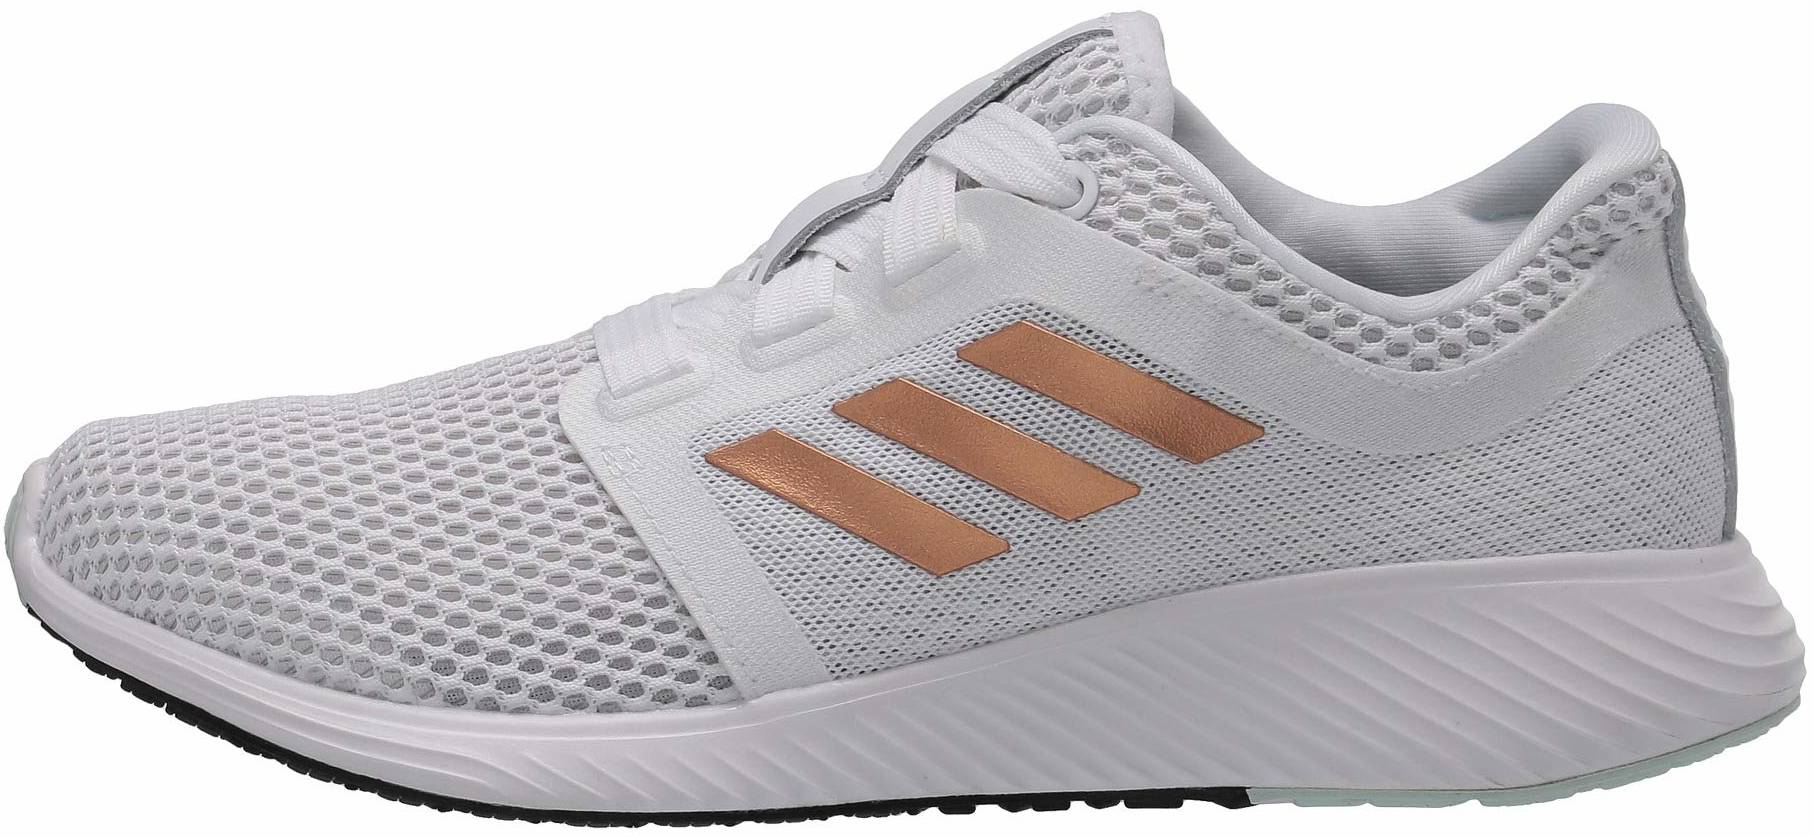 Only $38 + Review of Adidas Edge Lux 3